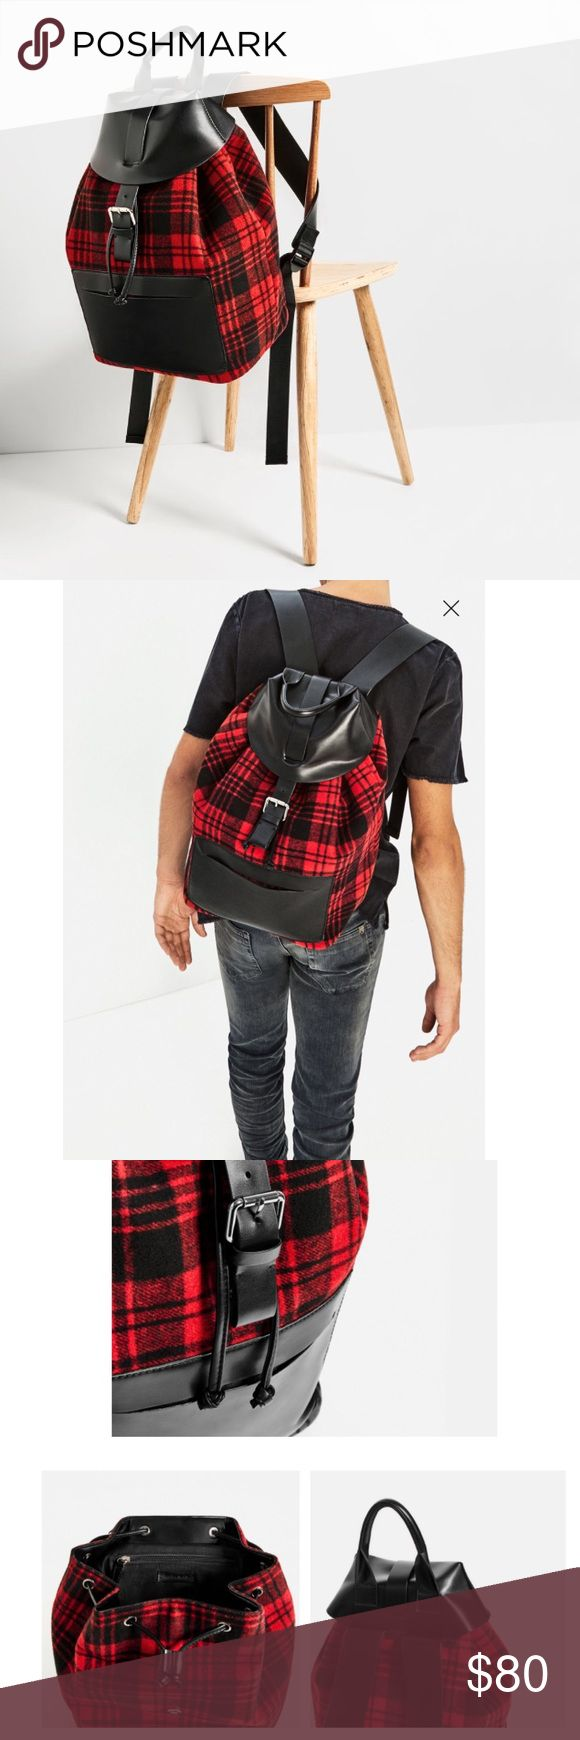 Zara Check Print Backpack NWT New with tags // SOLD OUT ONLINE & IN STORES // 15% off on bundles. I ship same-day from pet/smoke-free home. Buy with confidence. I am an expert top seller with close to 400 5-star ratings and A LOT of love notes. Check them out. 😊😎 Zara Bags Backpacks